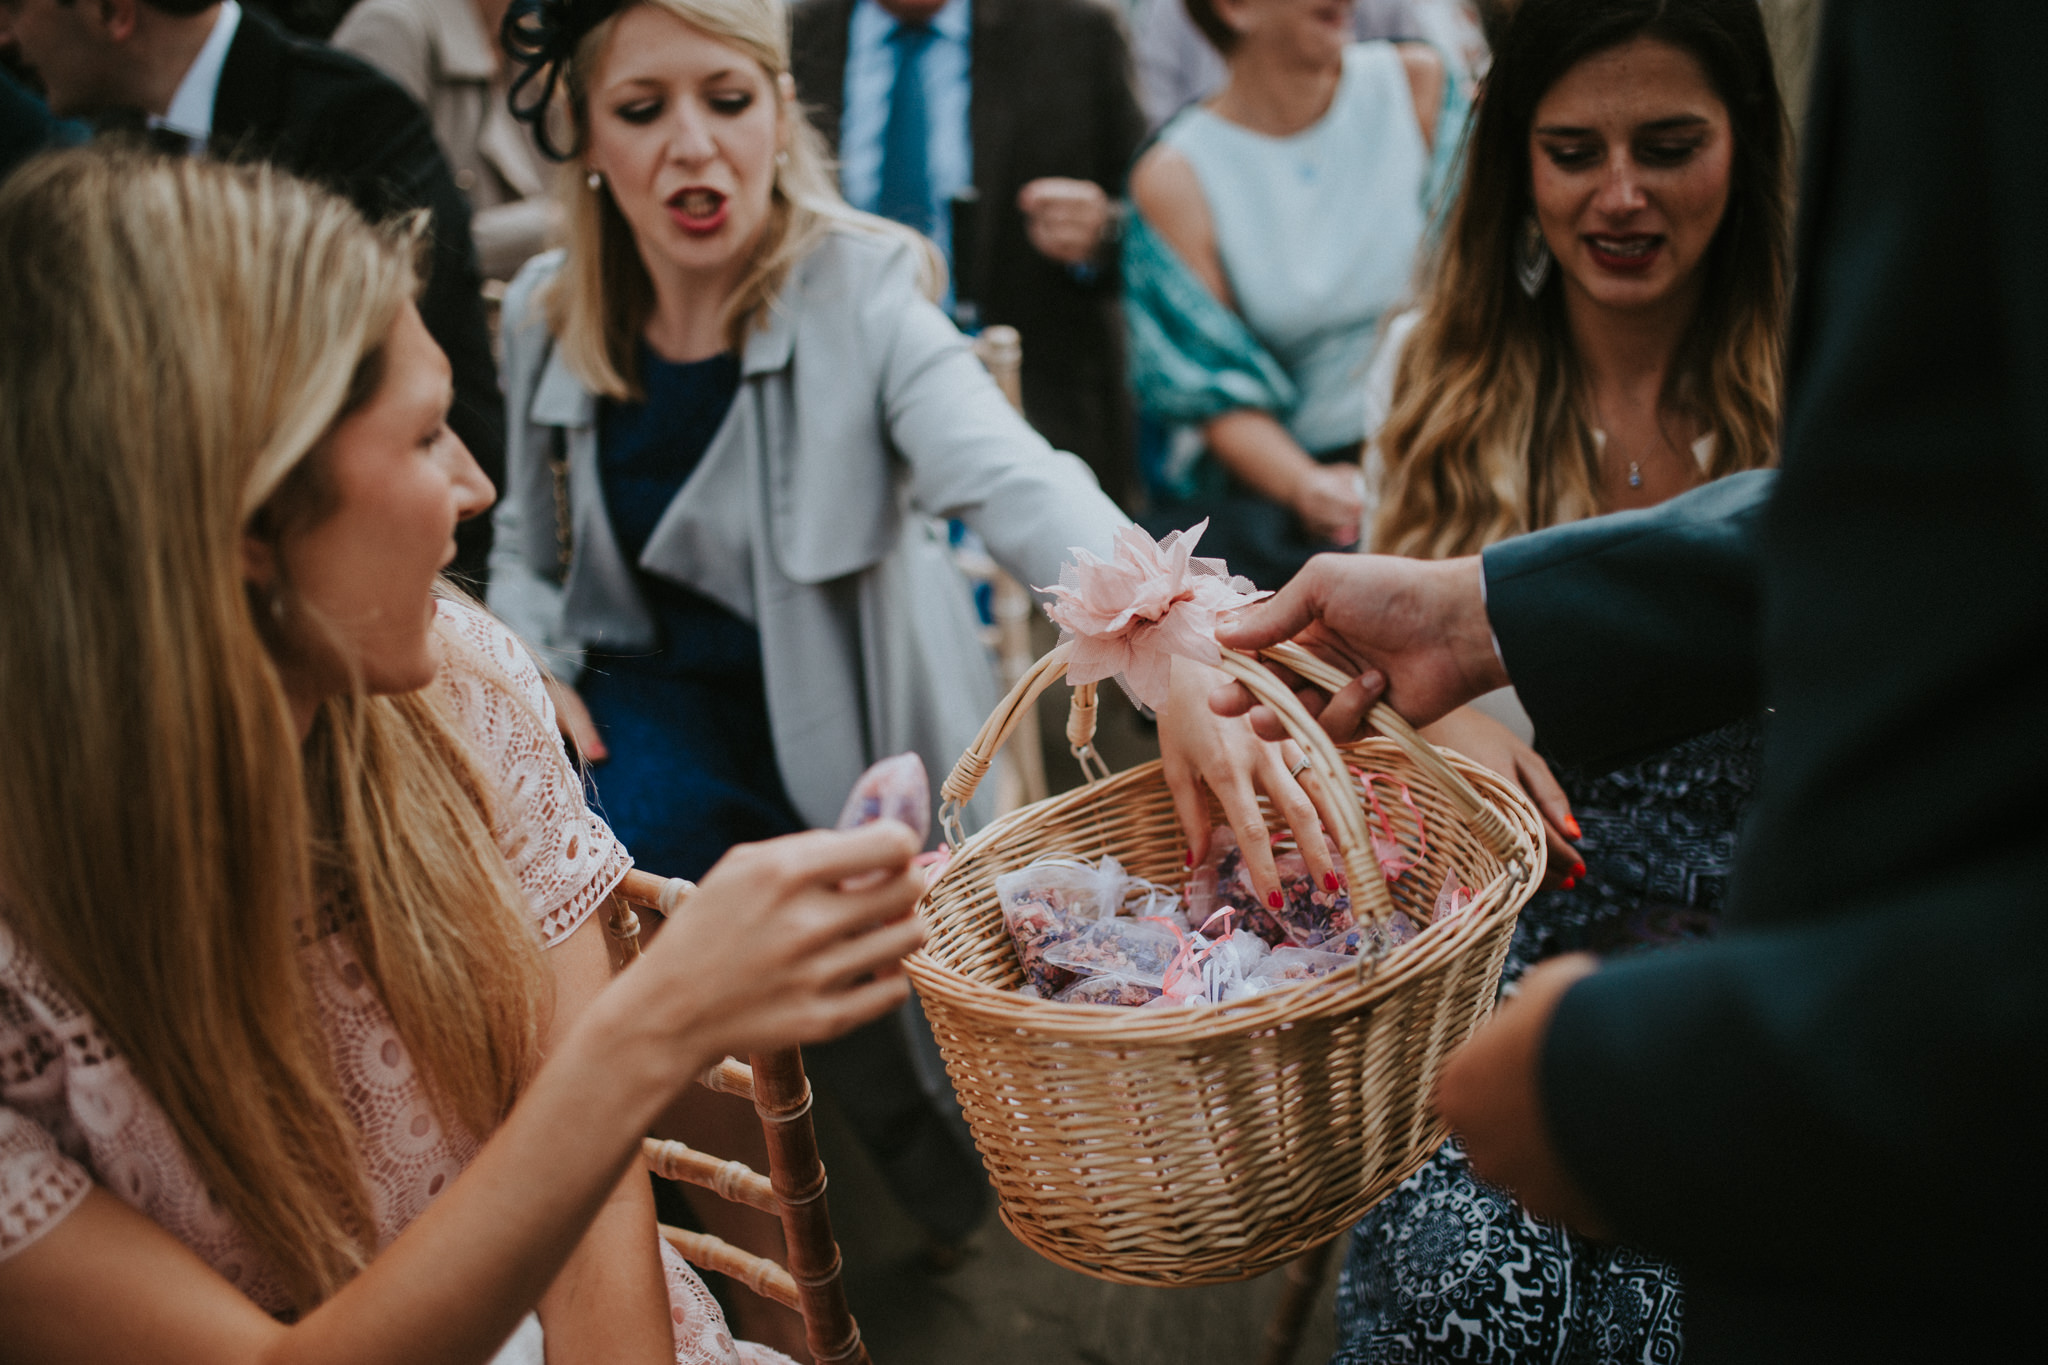 Wedding guests are taking rose petals out of a basket.